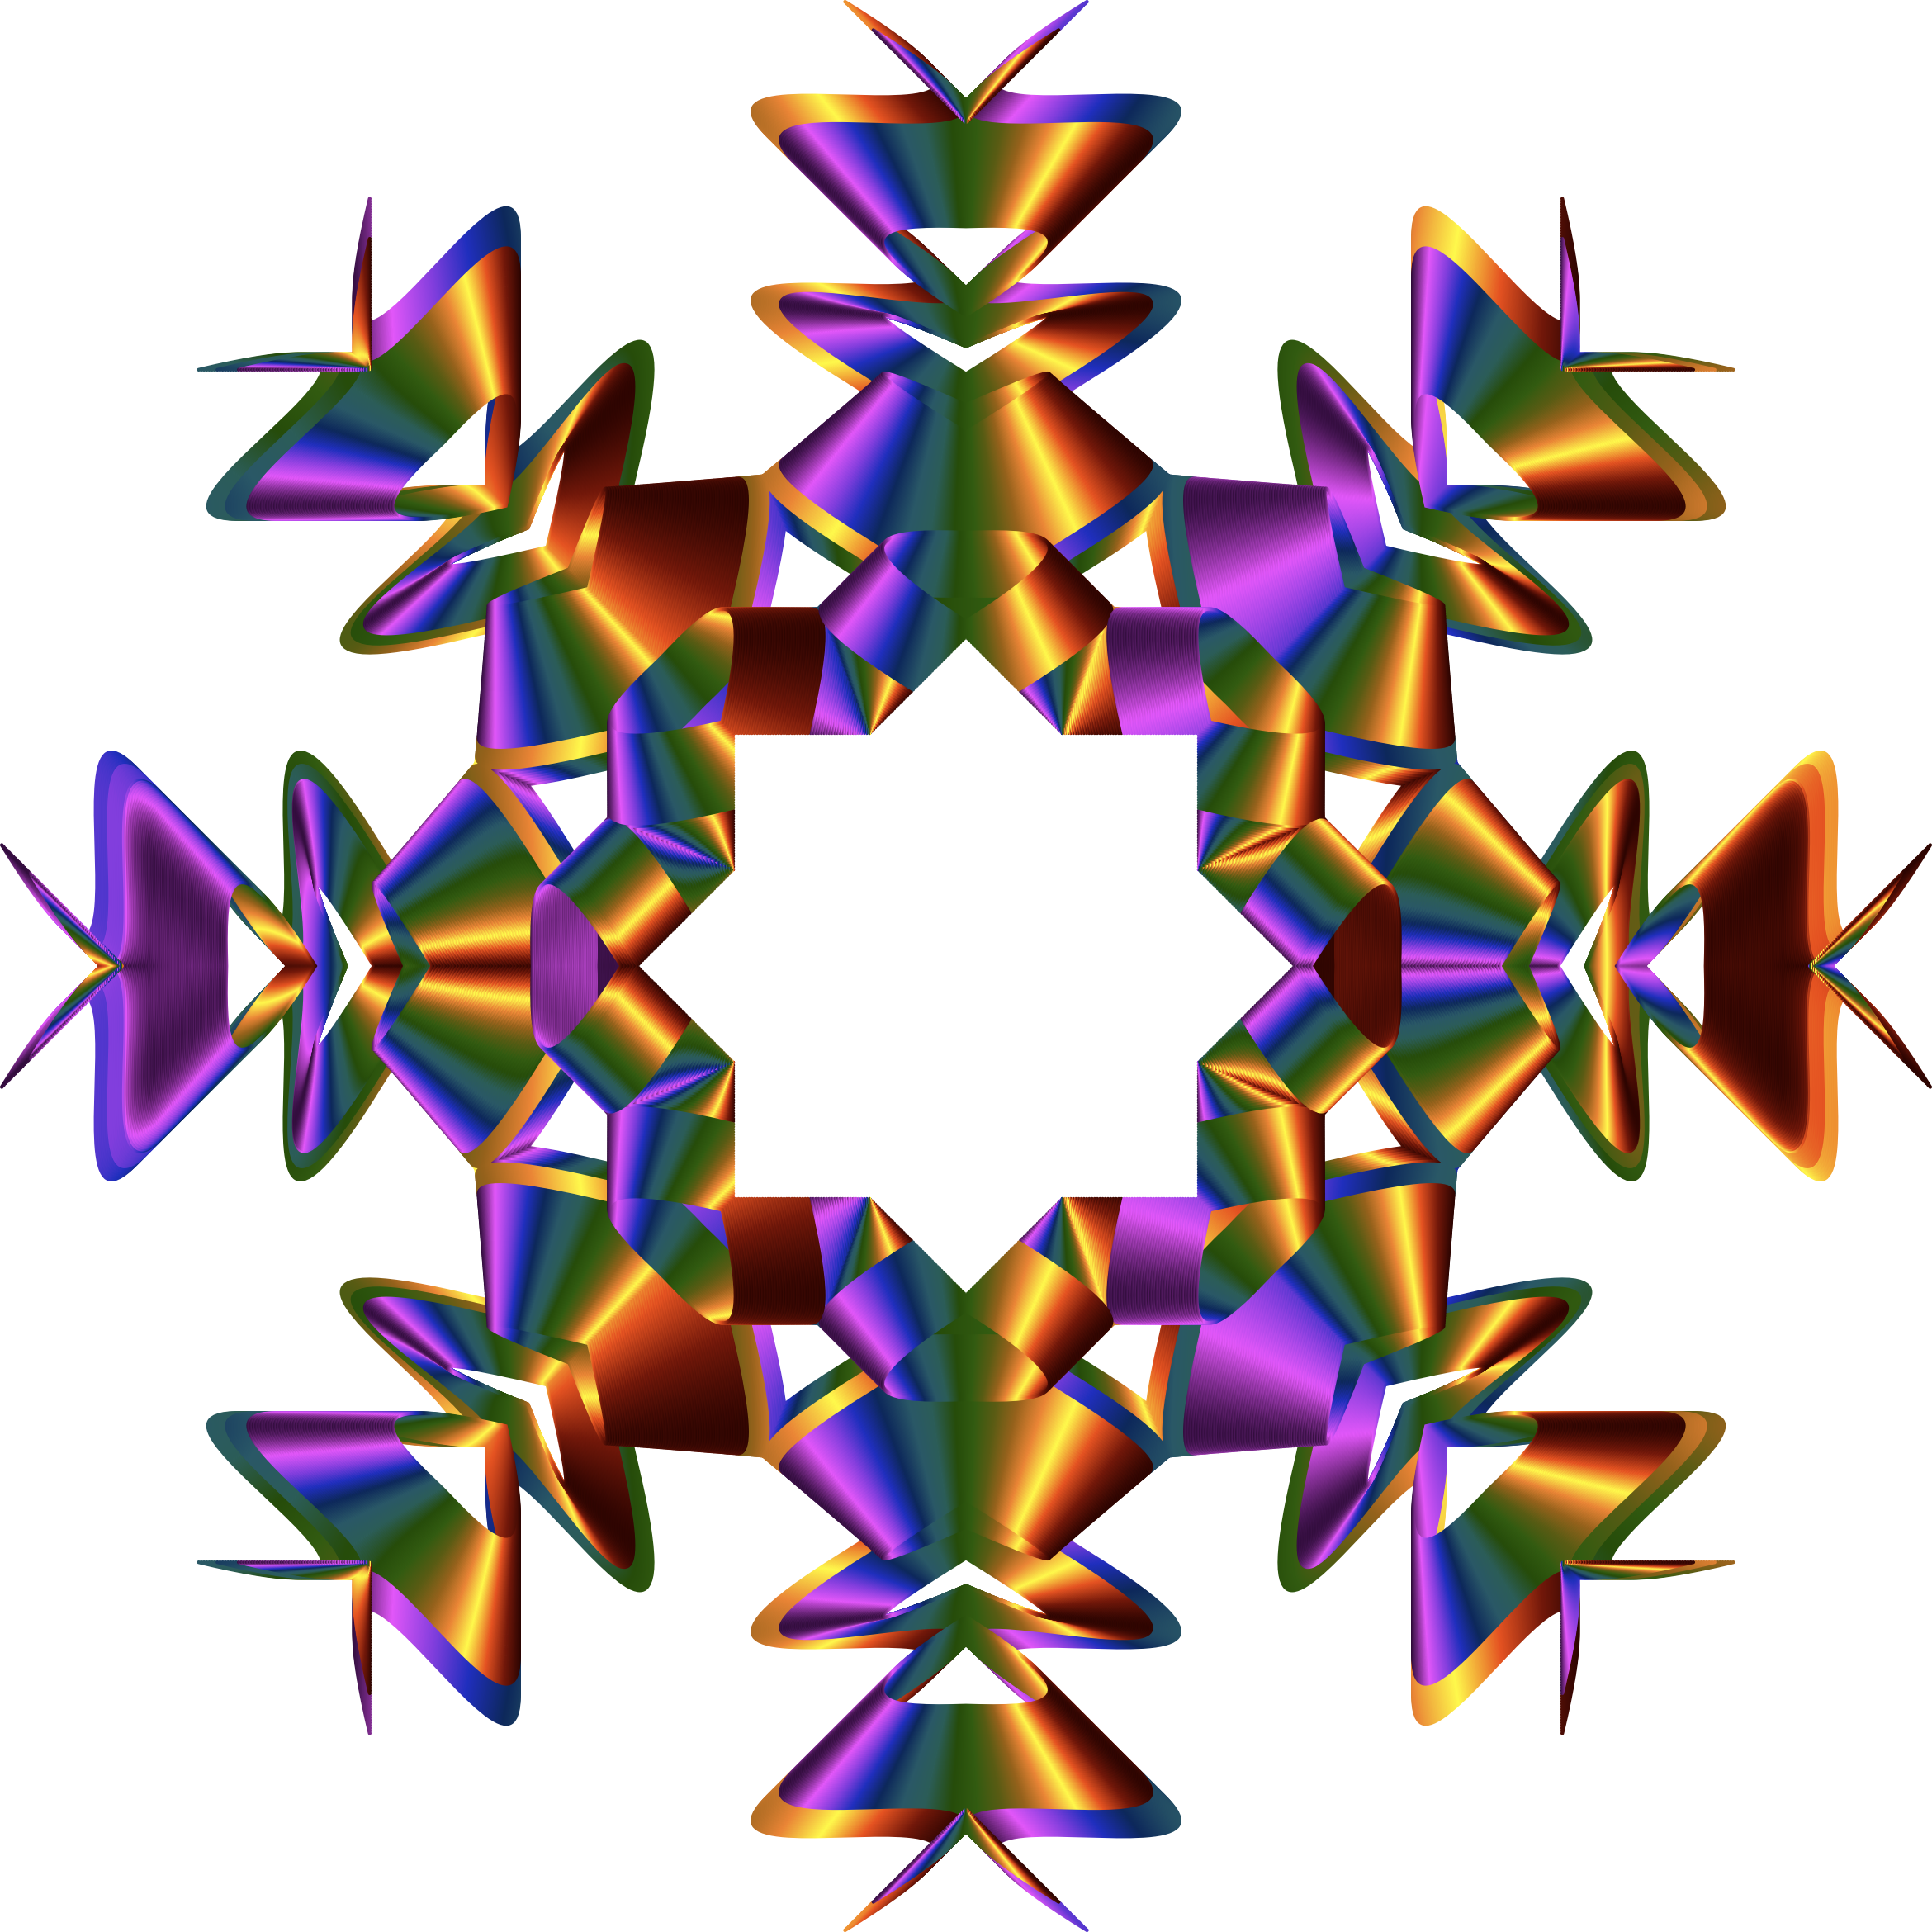 Prismatic Star Line Art 4 No Background by GDJ